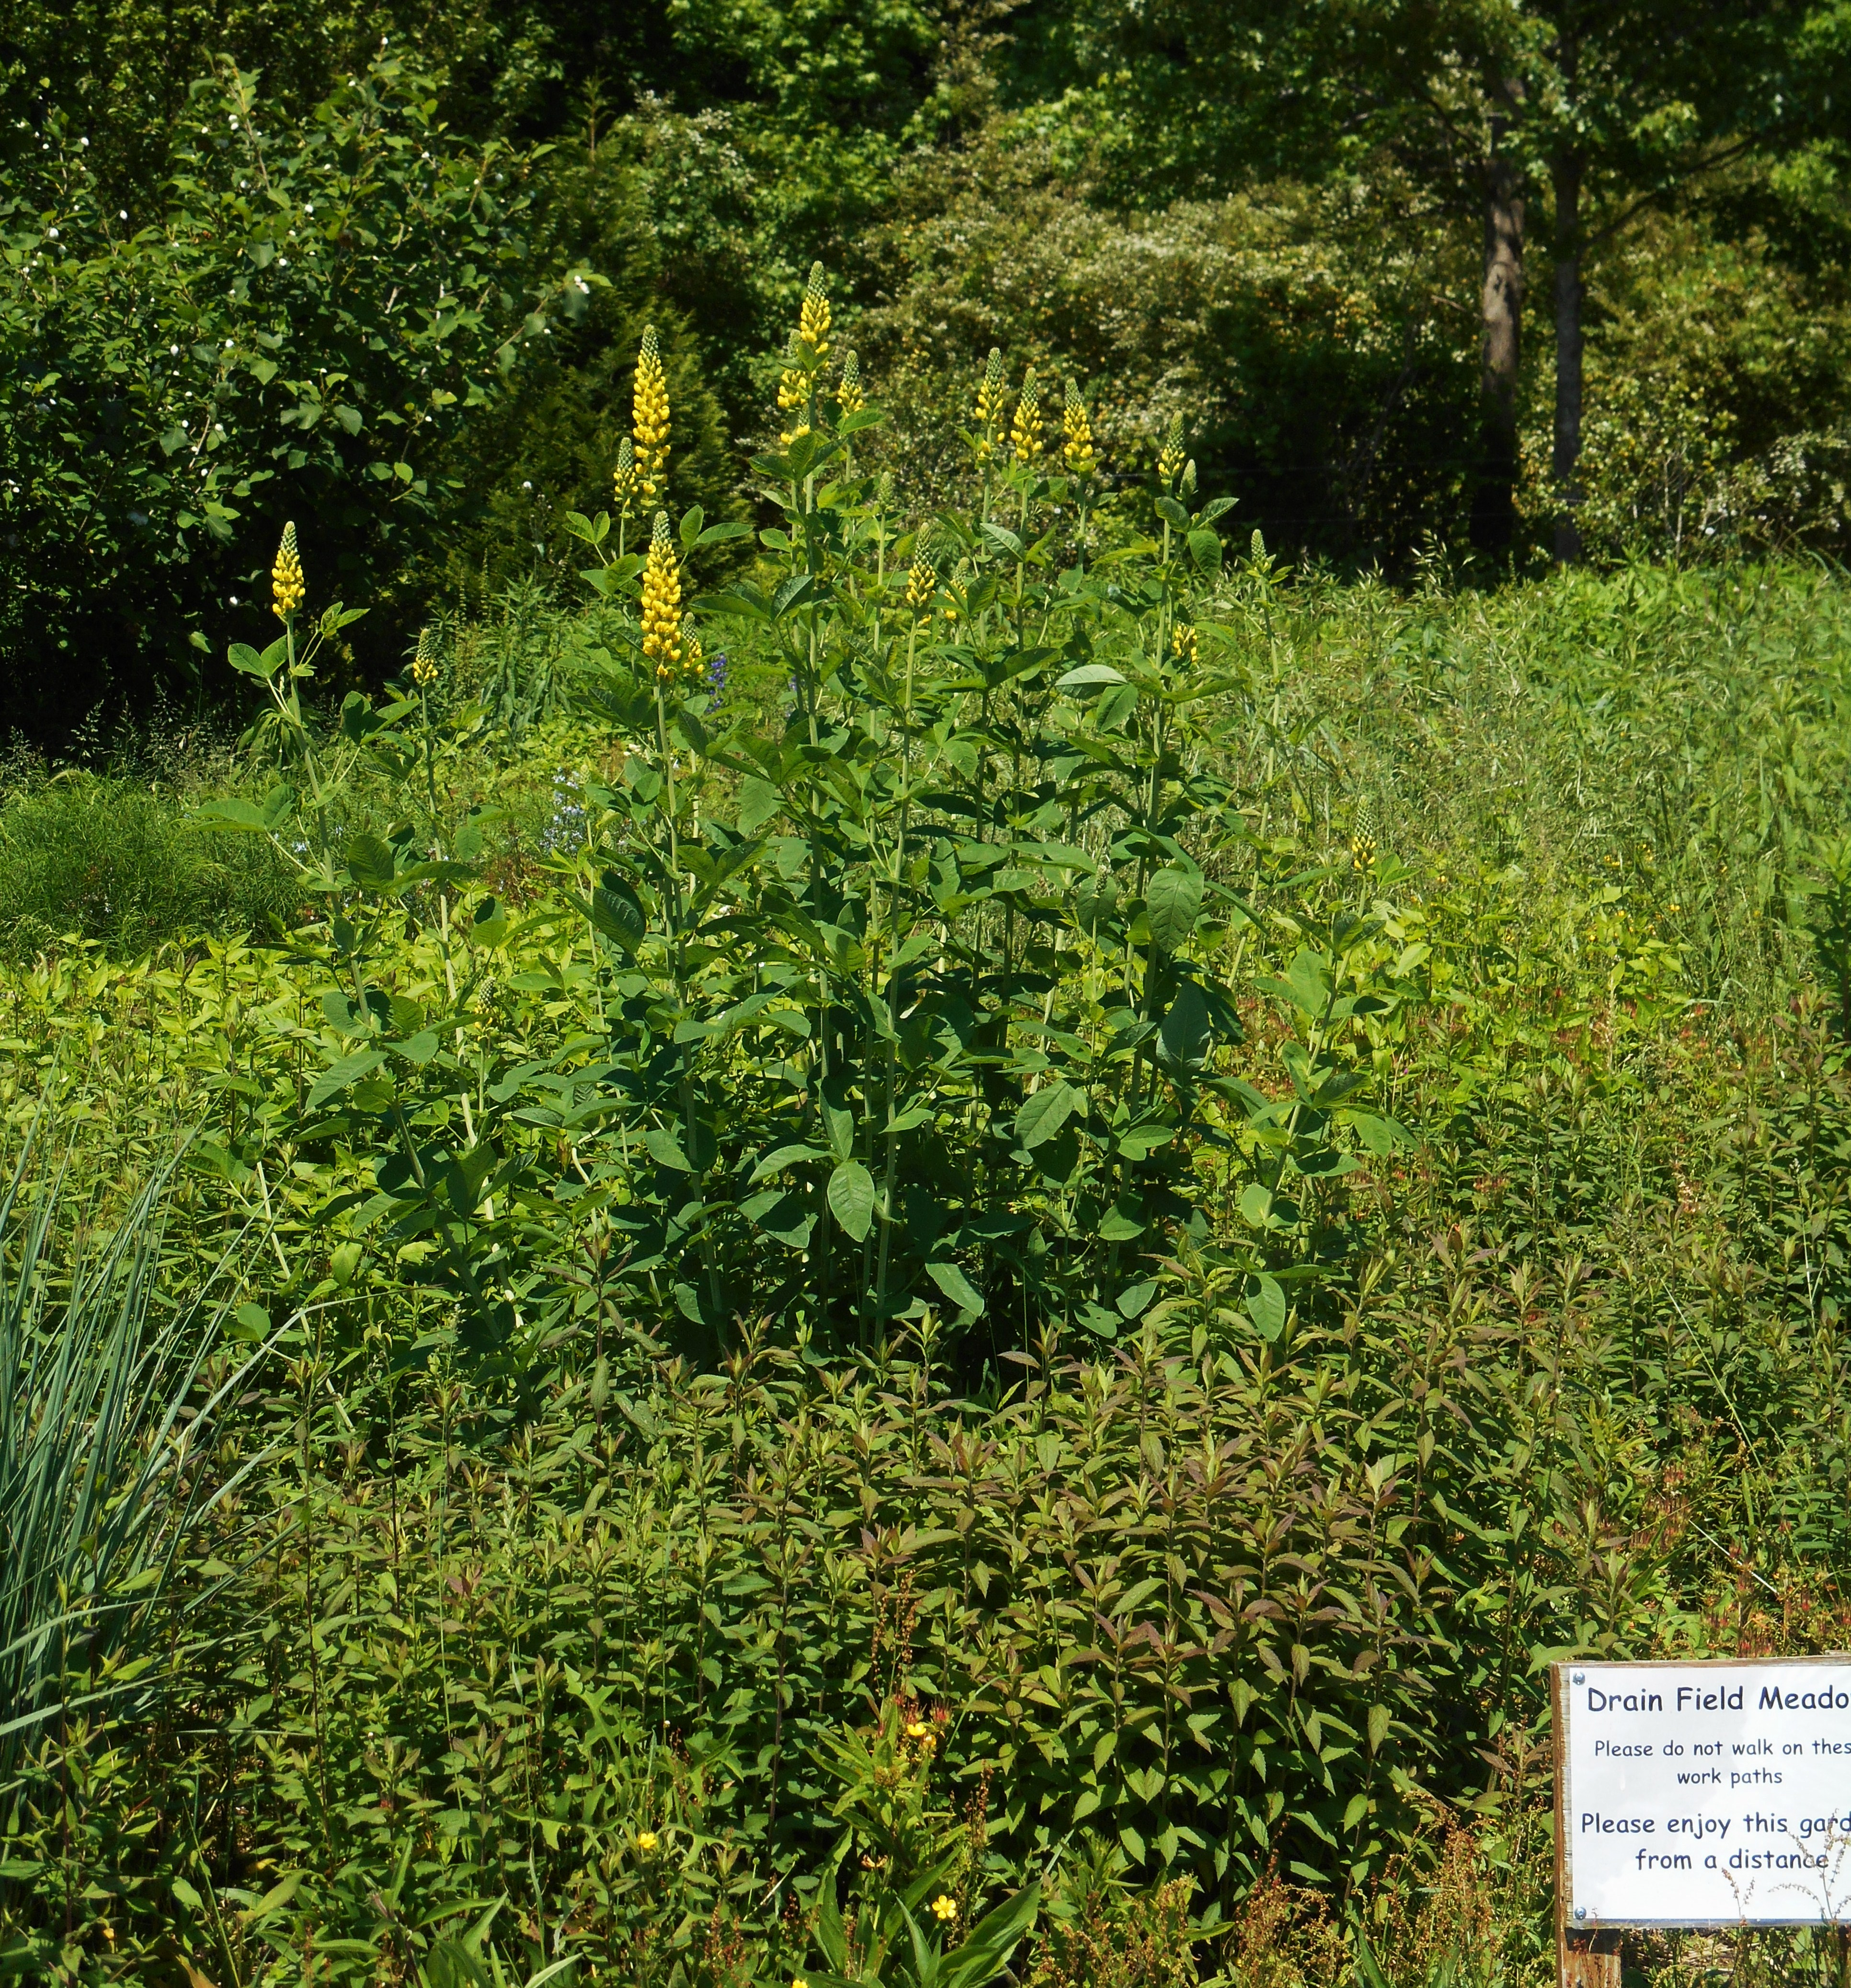 This is the meadow garden where Brent showed us Mountain Mint and other native perennials we might grow in our own gardens.